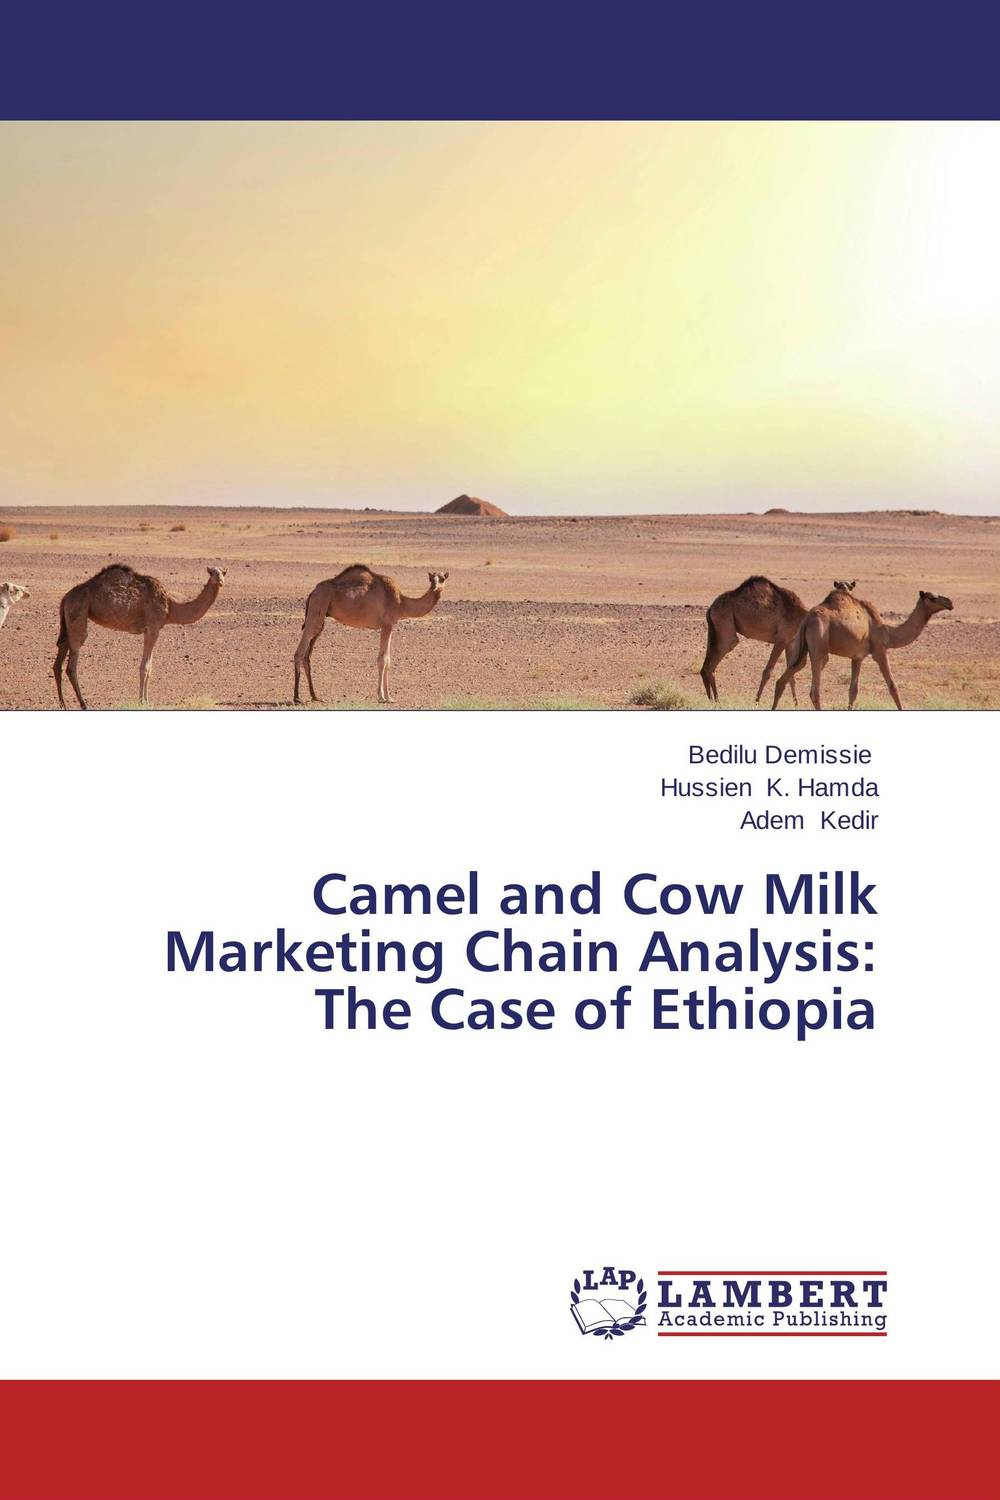 цена на Camel and Cow Milk Marketing Chain Analysis: The Case of Ethiopia